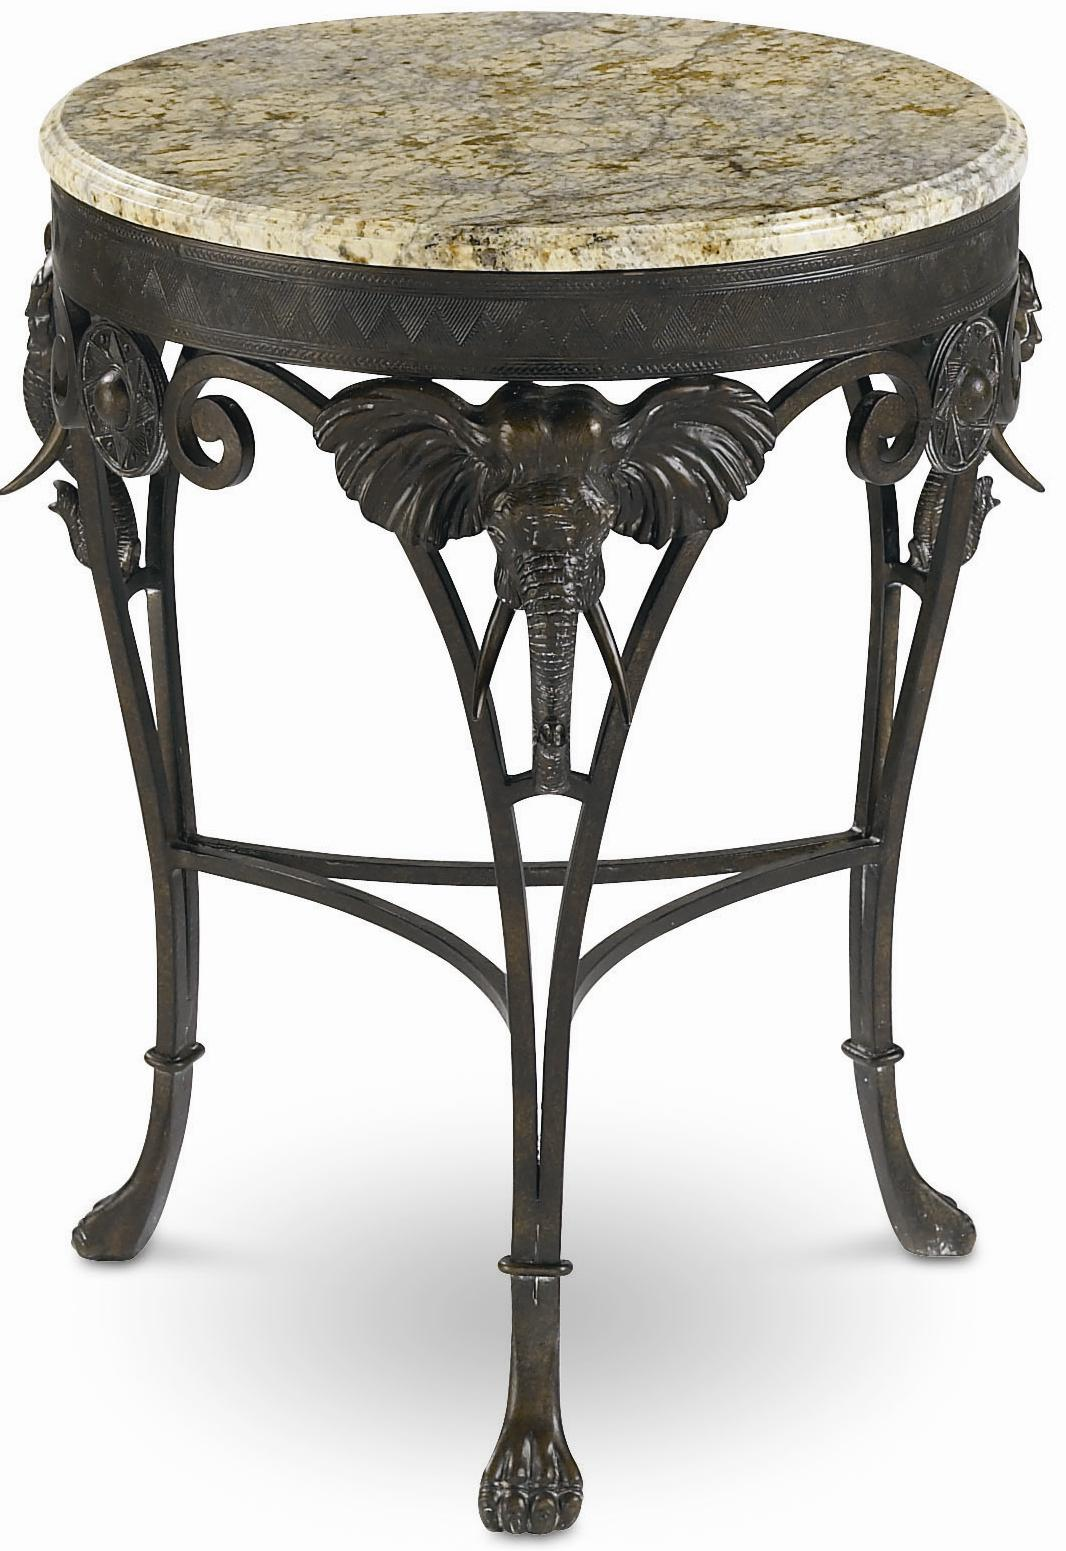 Thomasville® Ernest Hemingway  Elephant Accent Table - Item Number: 46291-237